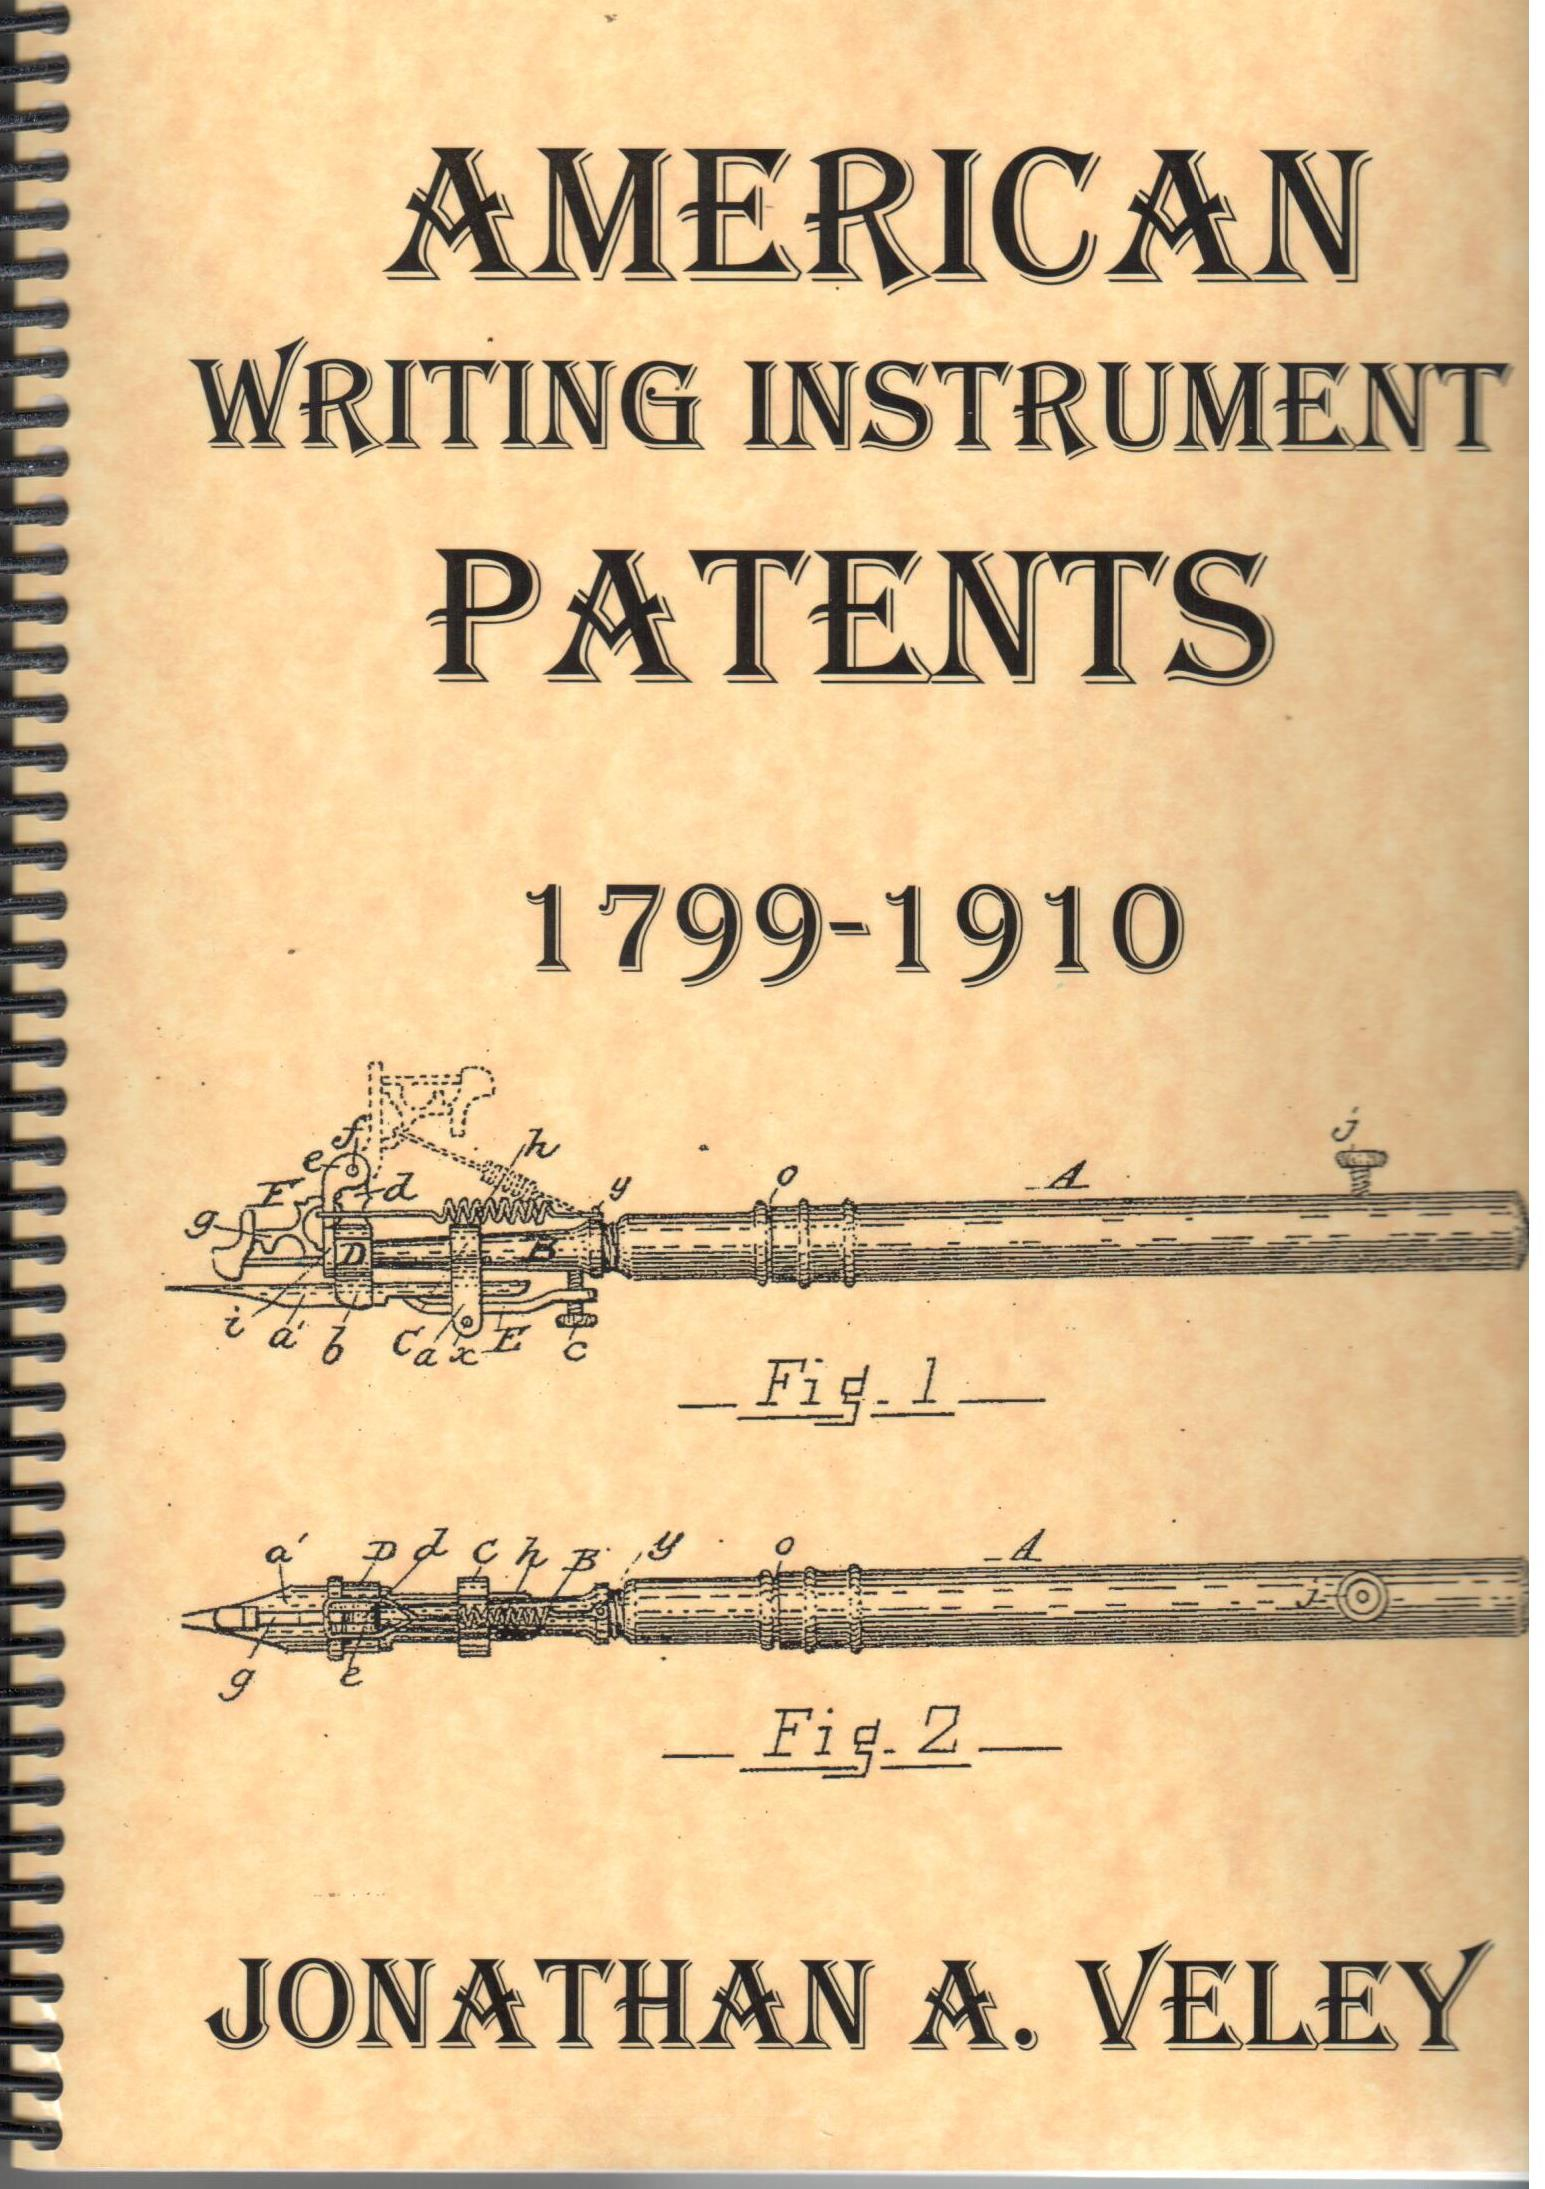 American Writing Instruments Patents 1799-1910